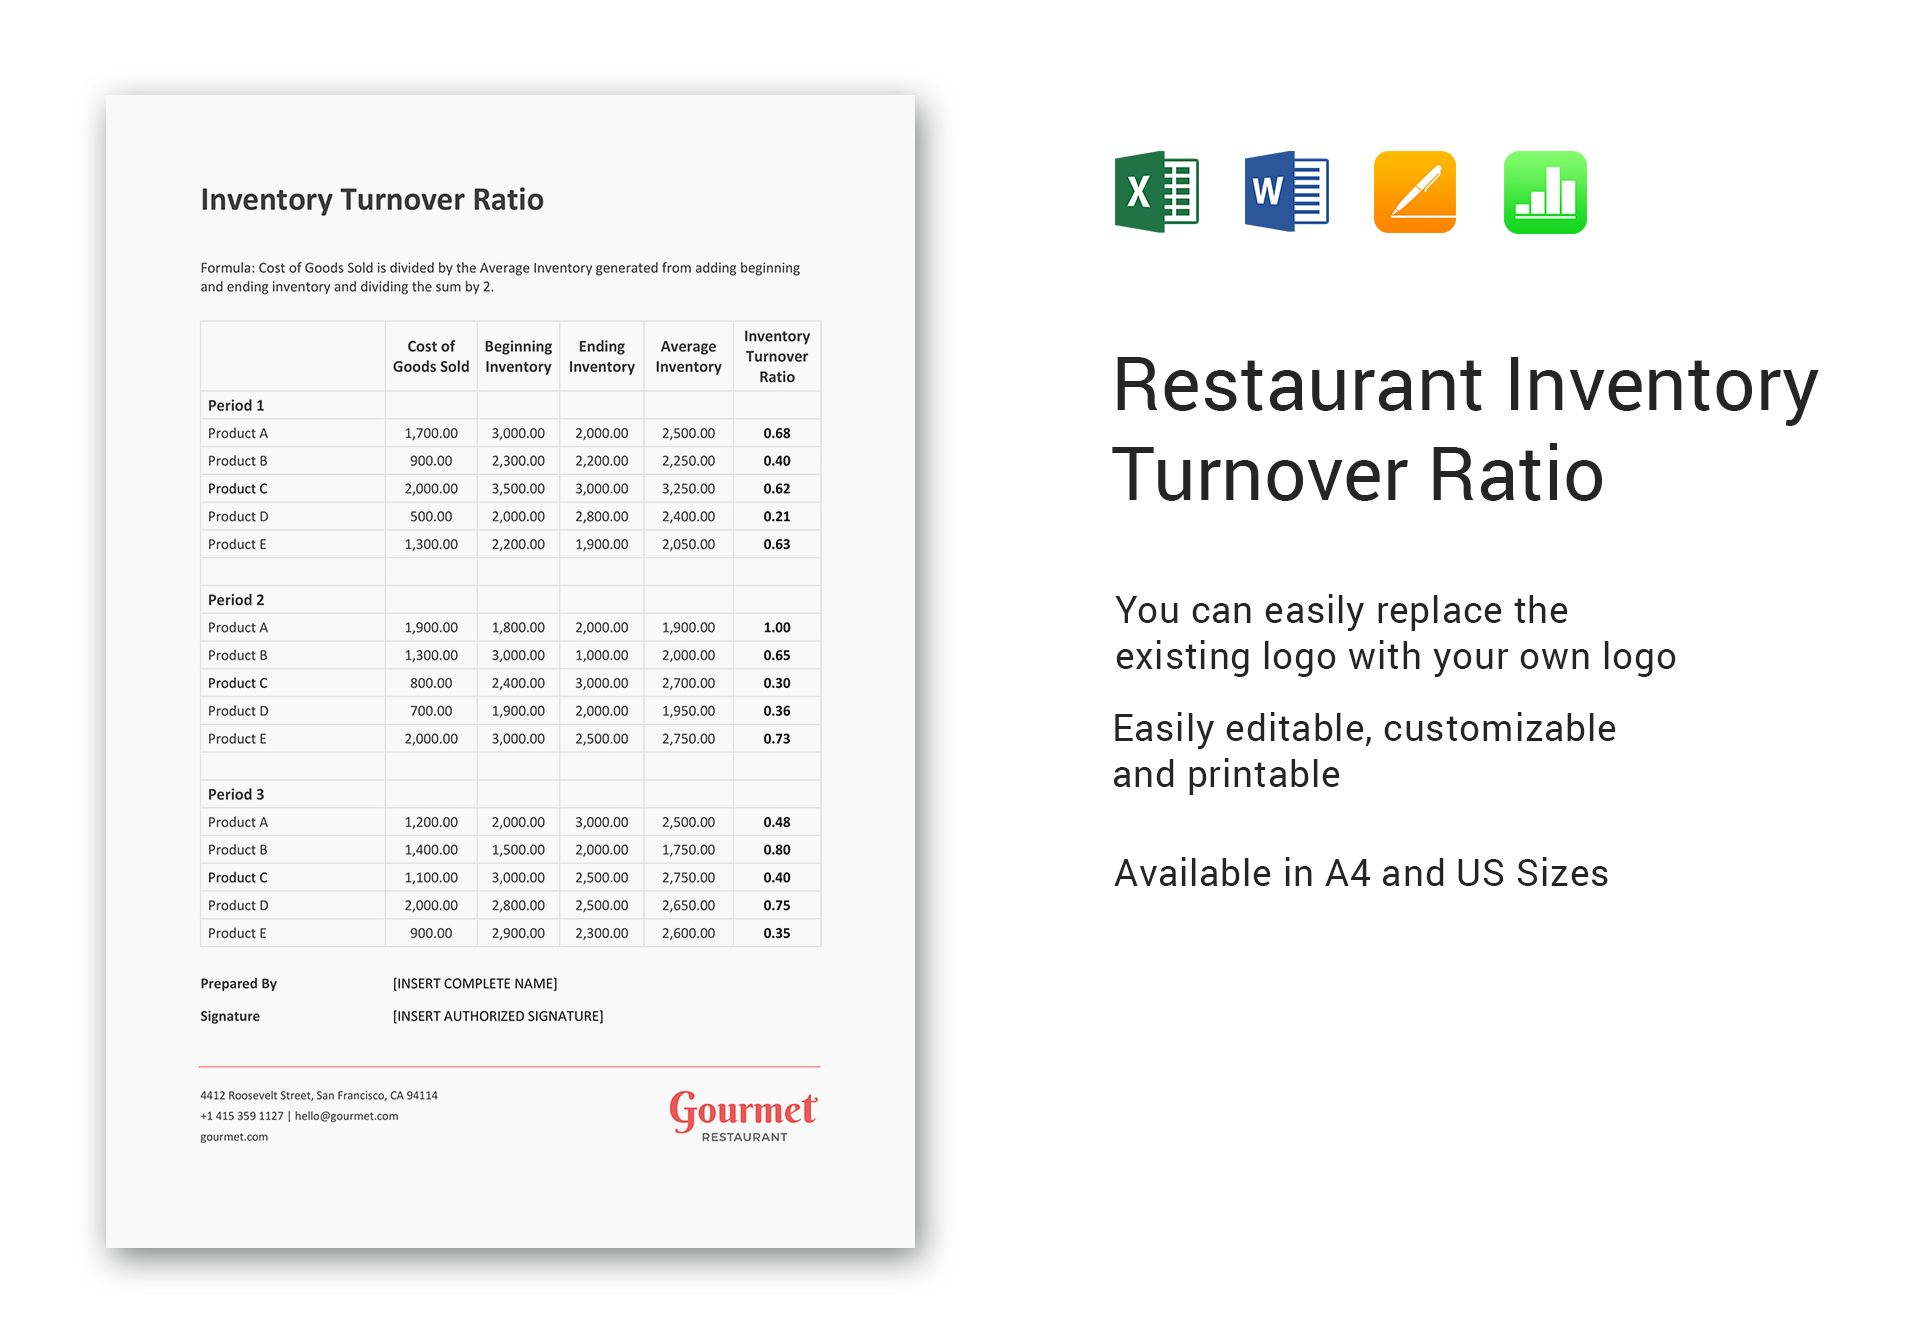 restaurant inventory turnover ratio